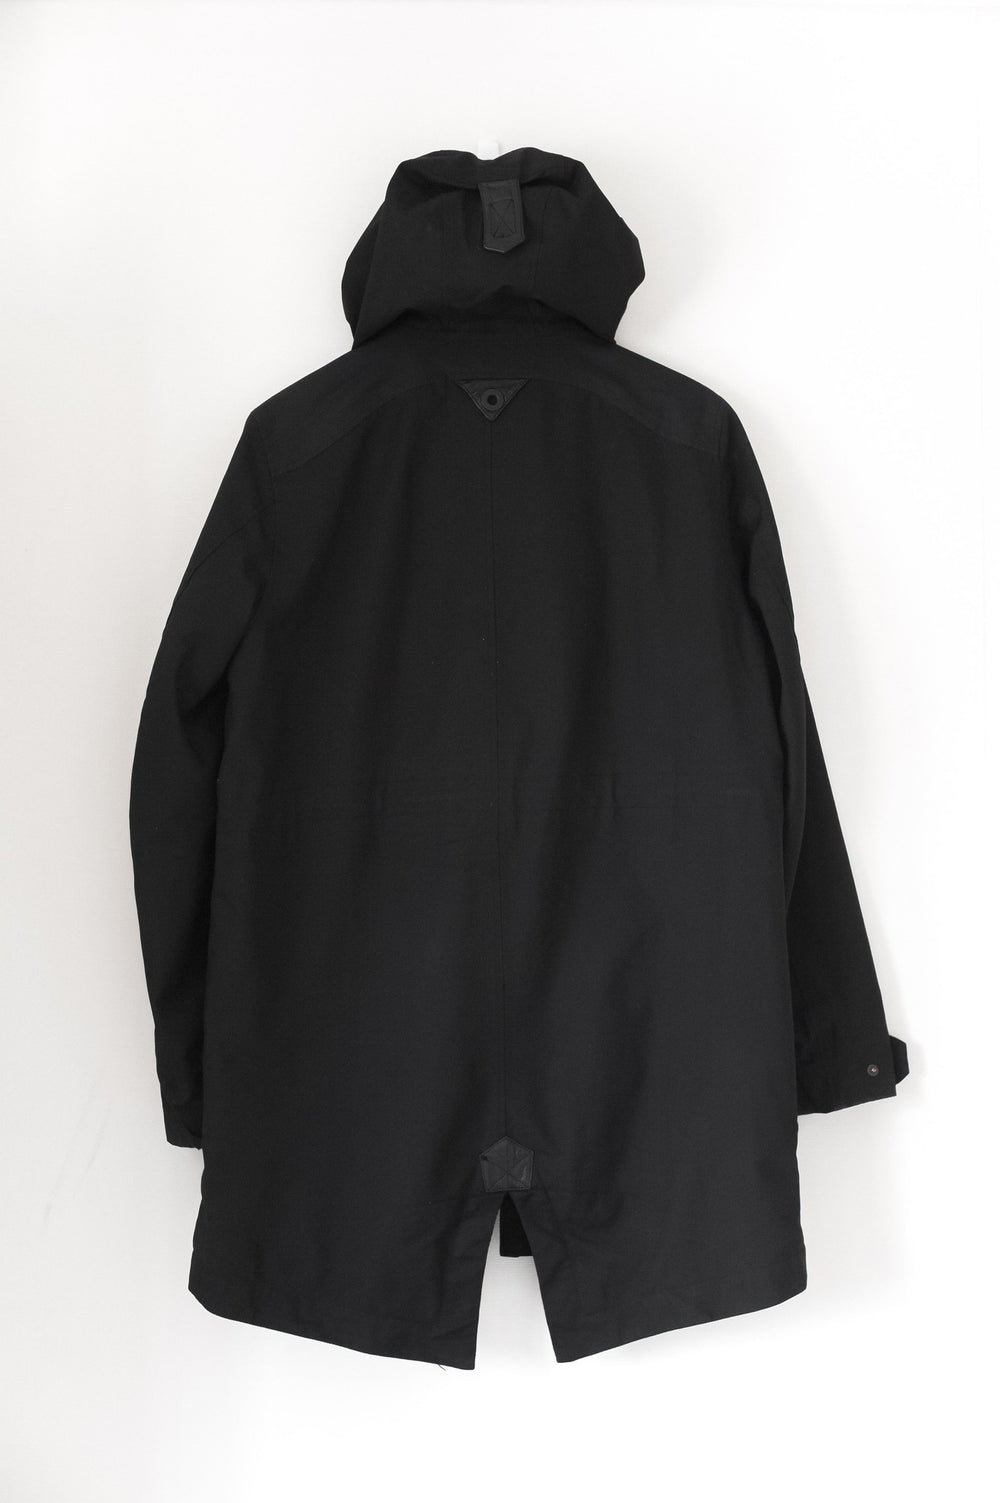 White Mountaineering Pertex Shield Fishtail Parka